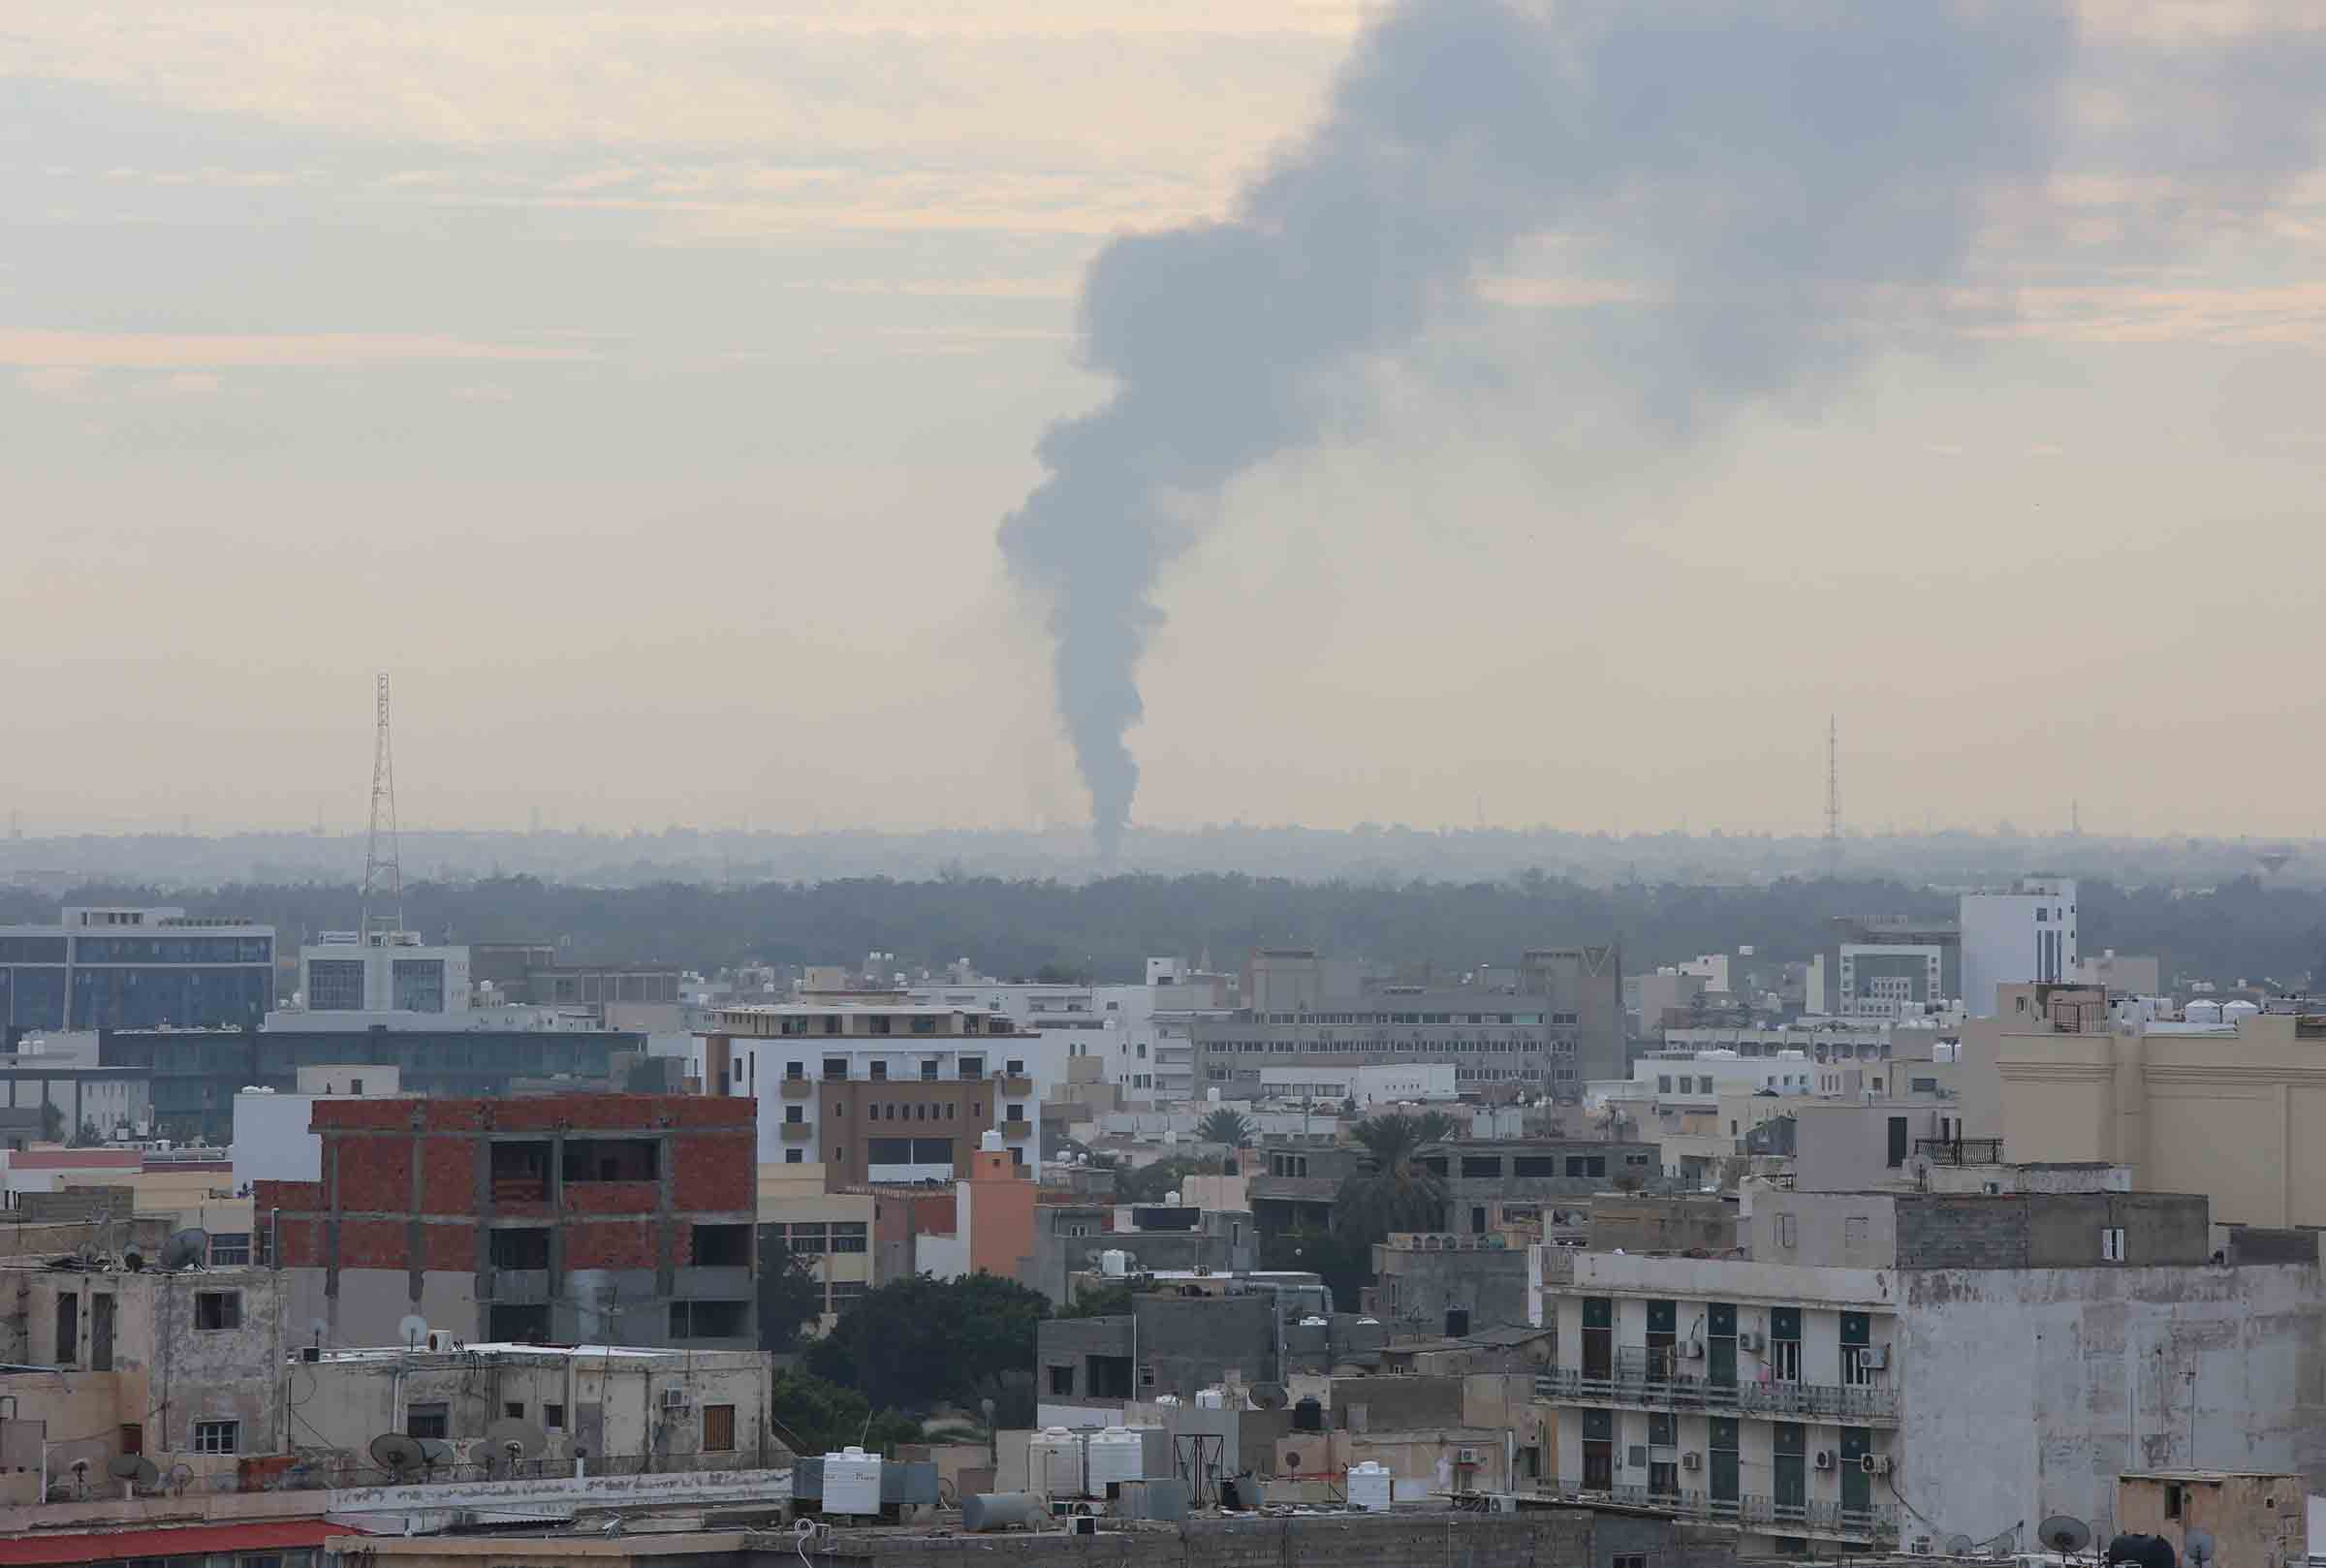 TRIPOLI, LIBYA - JANUARY 19: Smoke rises after forces of Warlord Khalifa Haftar attacked to capital Tripoli, Libya on January 19, 2020. Haftars forces had again violated the cease-fire which started early last Sunday.